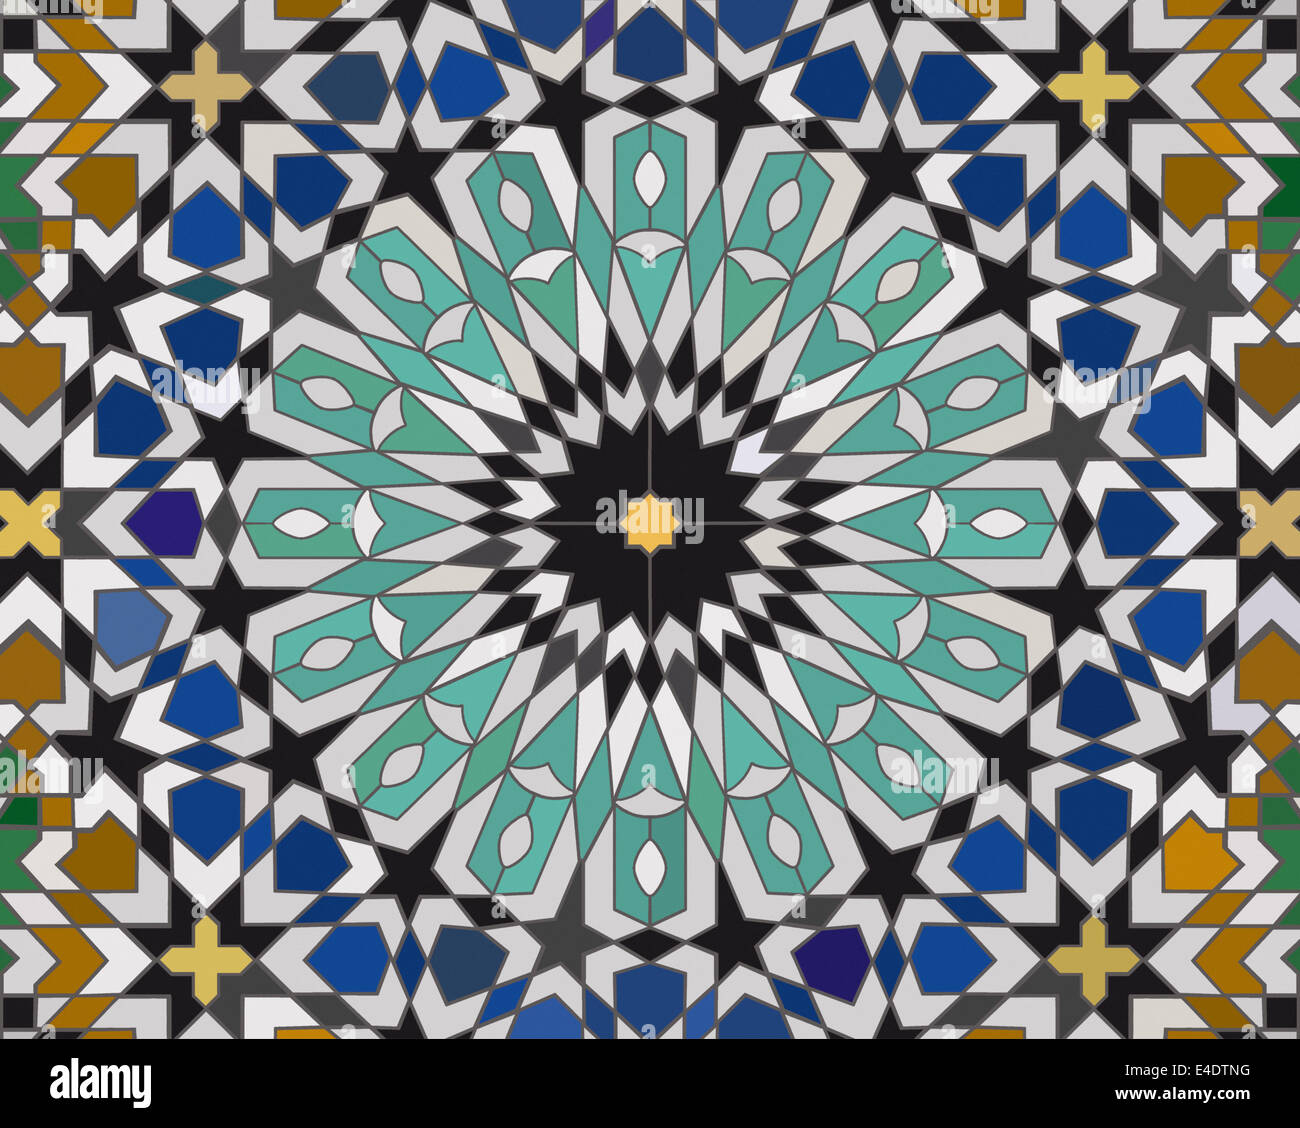 Moroccan Design Area Made Mosaic Tiles Based On A Moroccan Design With Complex